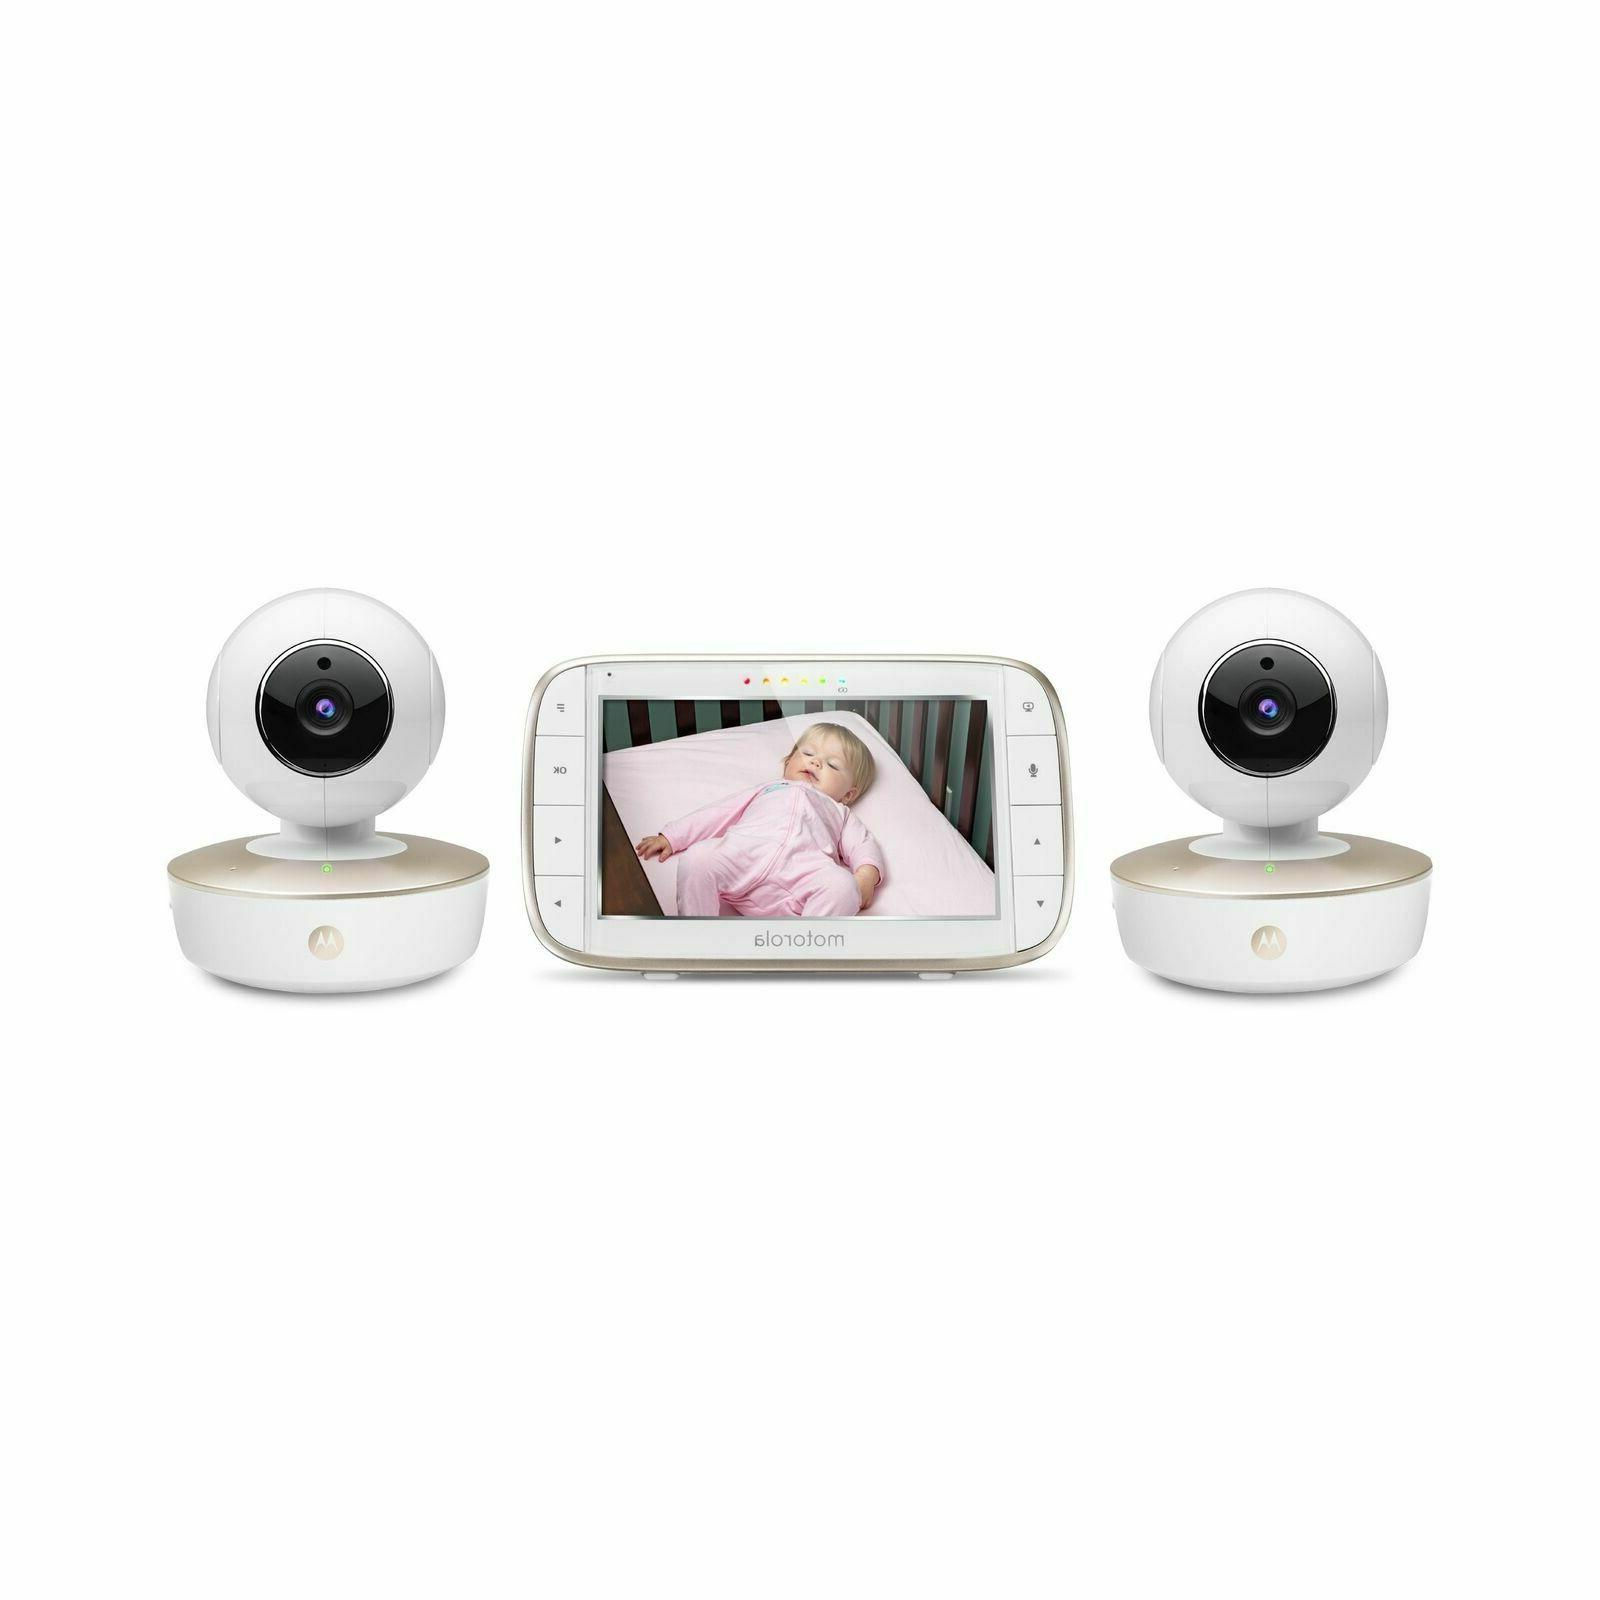 mbp50 g2 5 portable video baby monitor